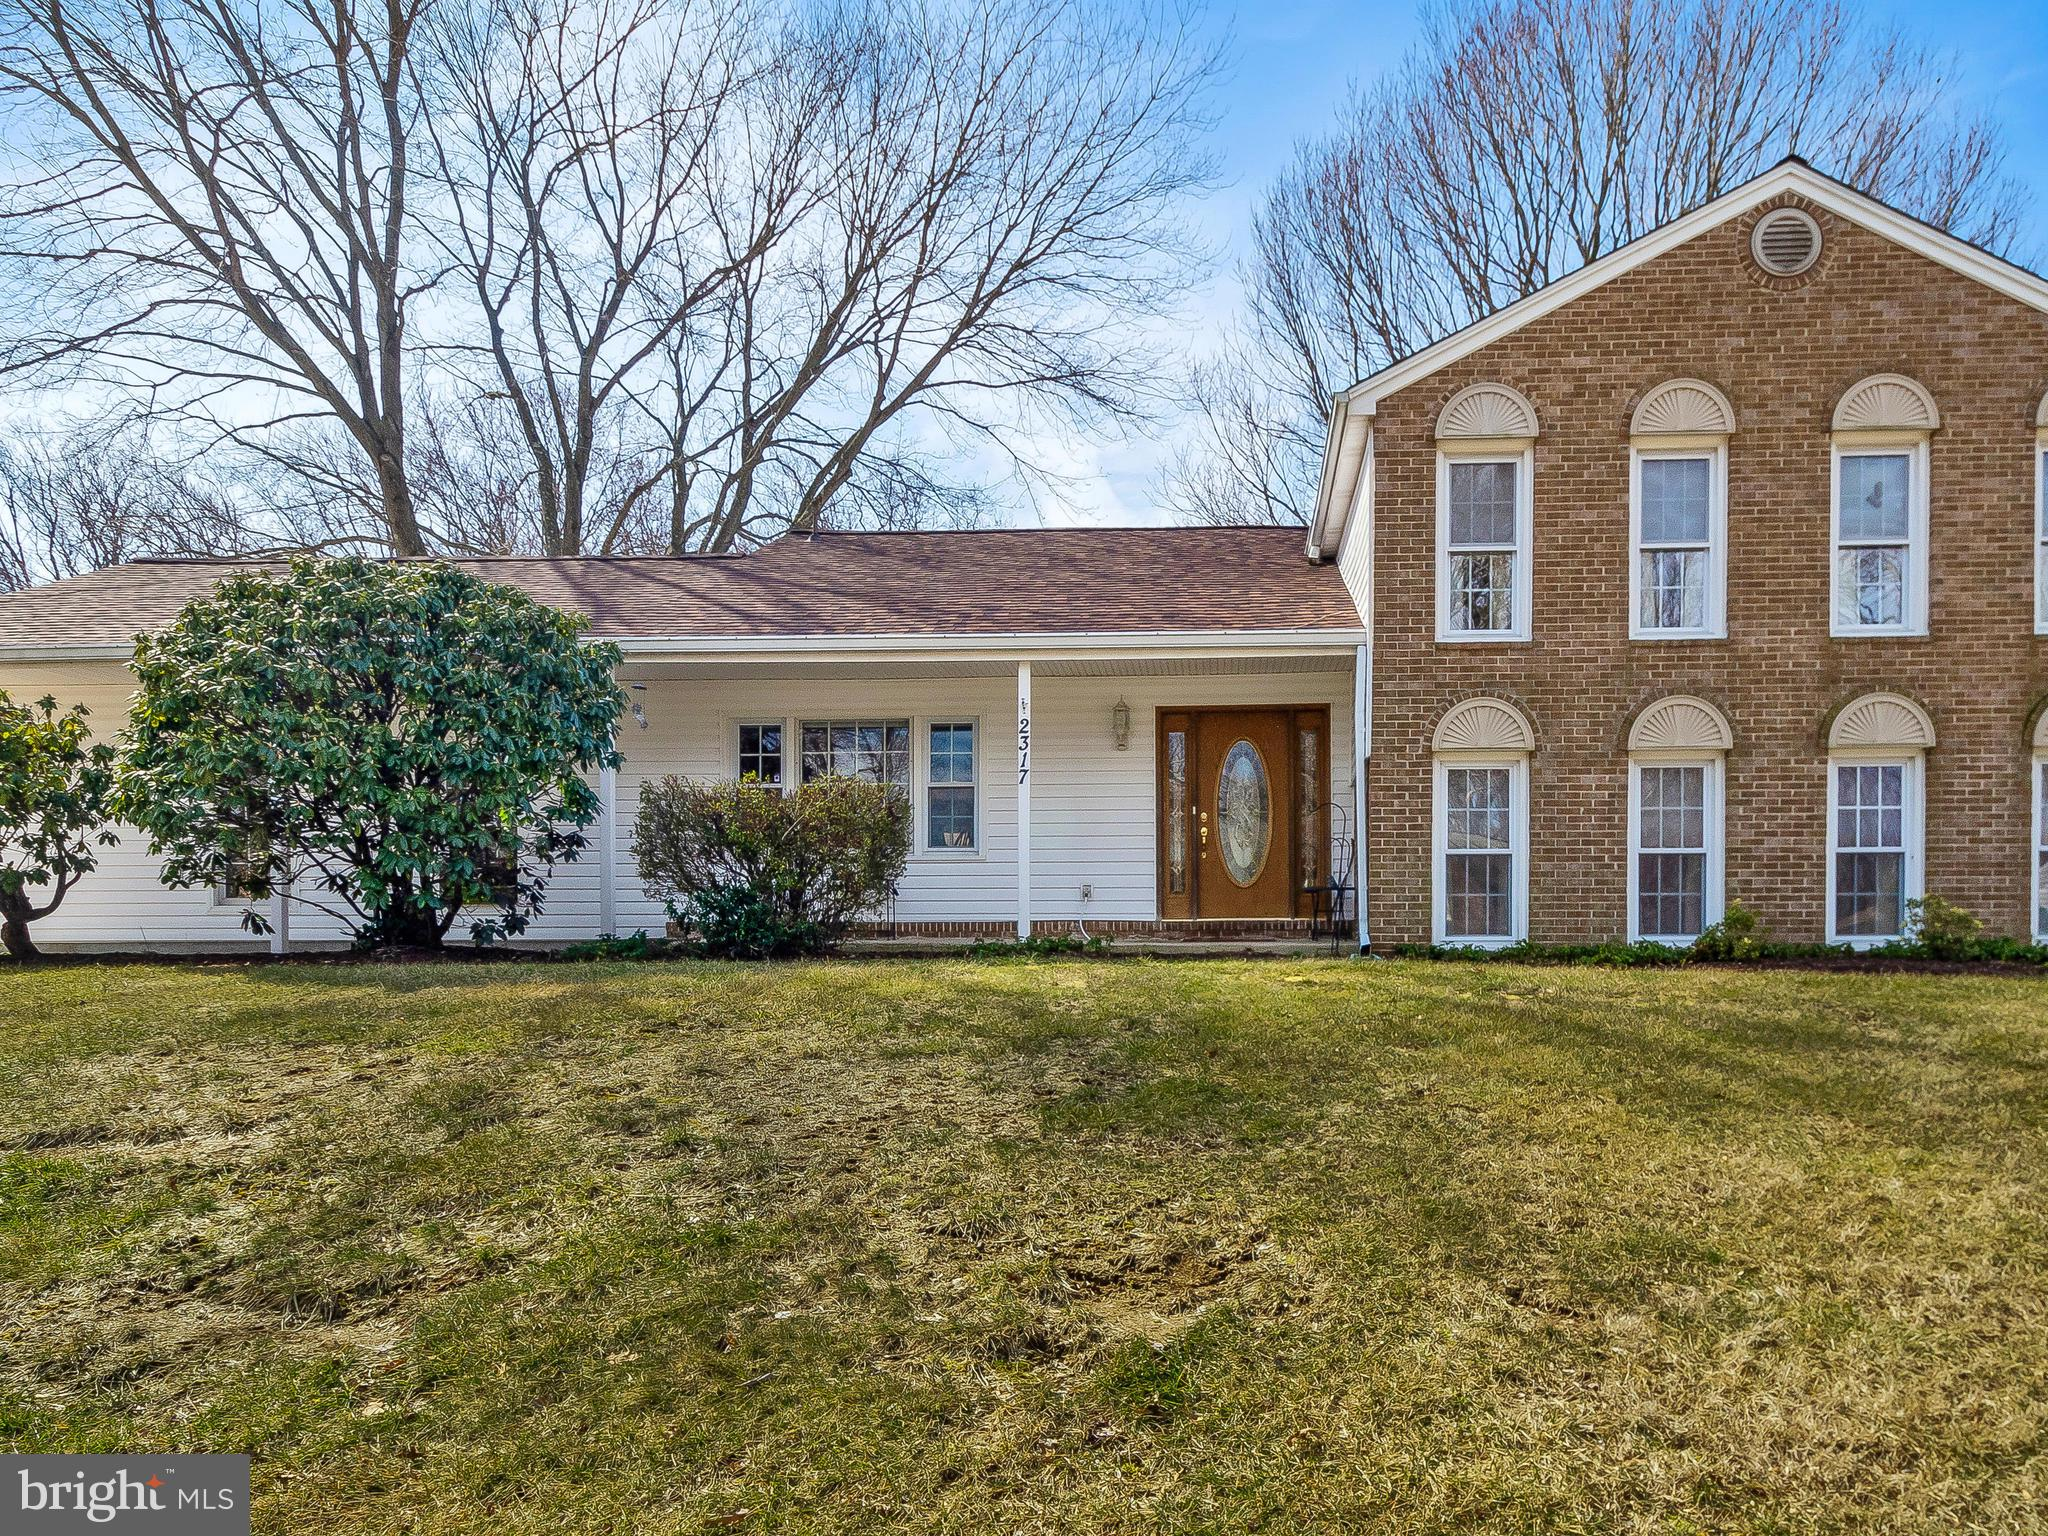 2317 BLUE VALLEY DRIVE, SILVER SPRING, MD 20904